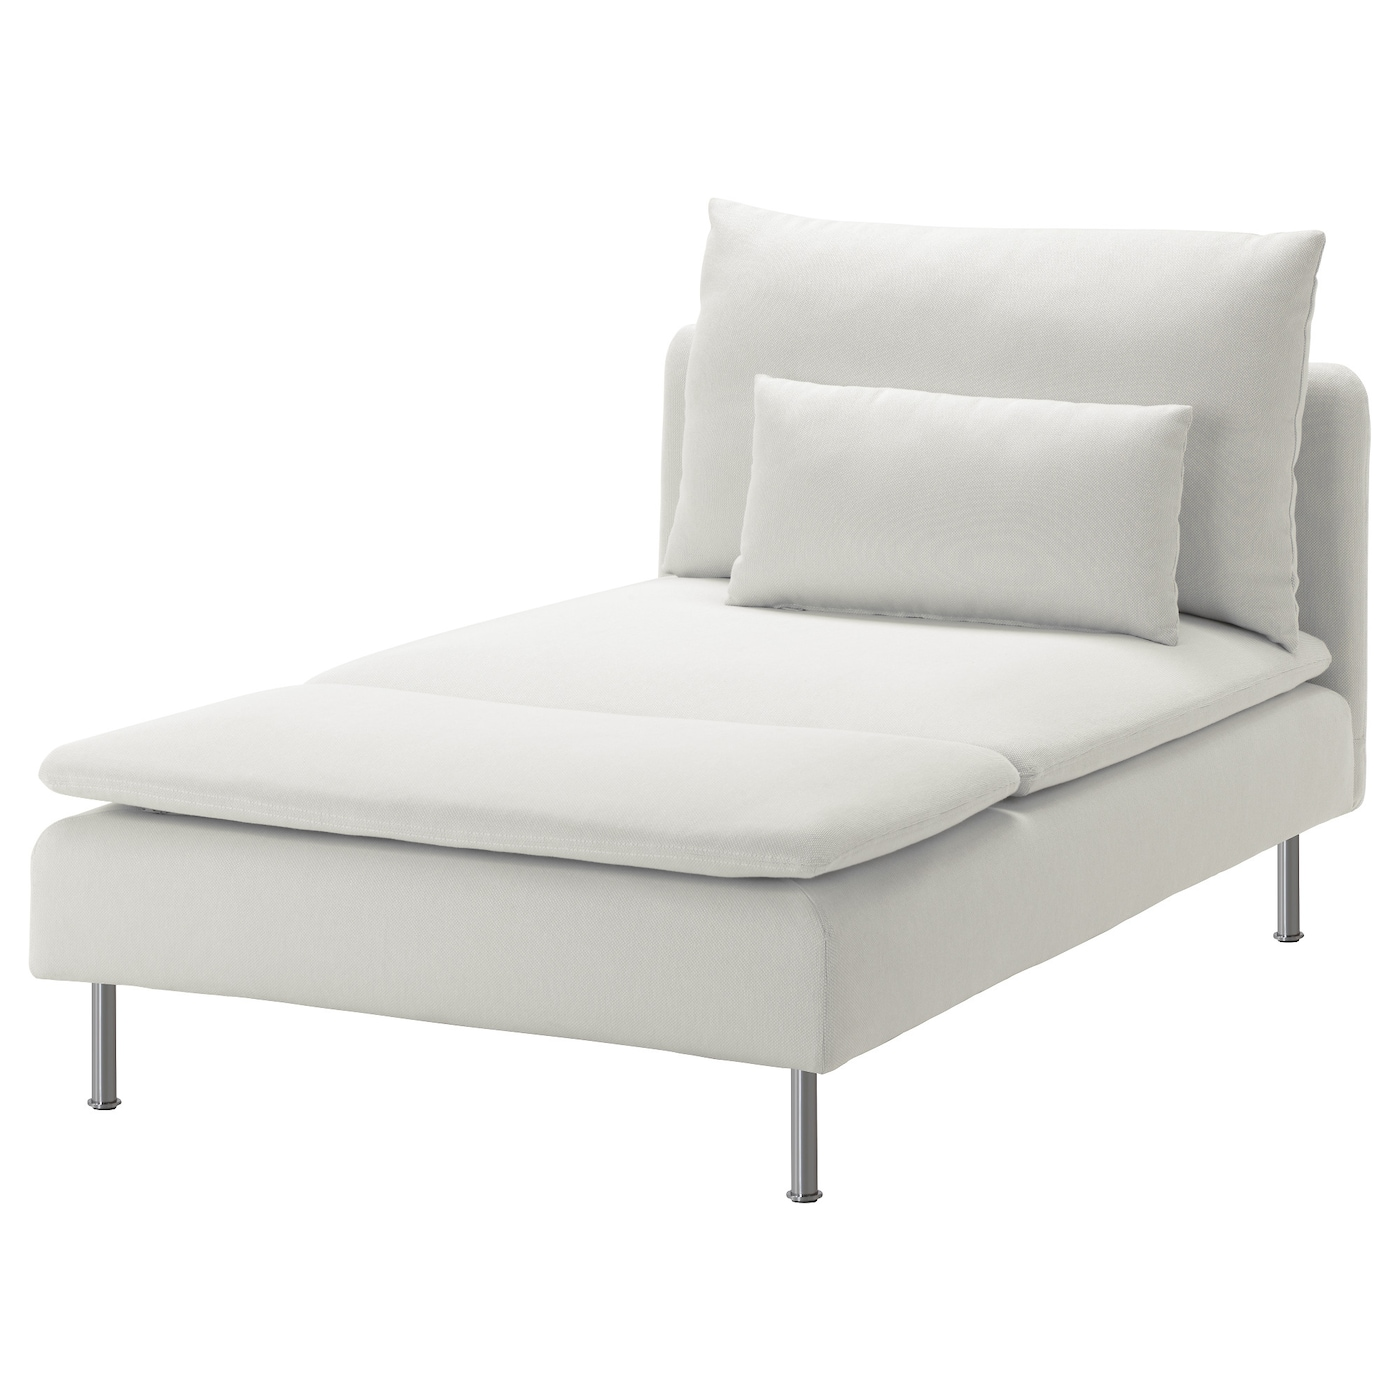 S derhamn cover for chaise longue finnsta white ikea for Chaise longue jardin ikea